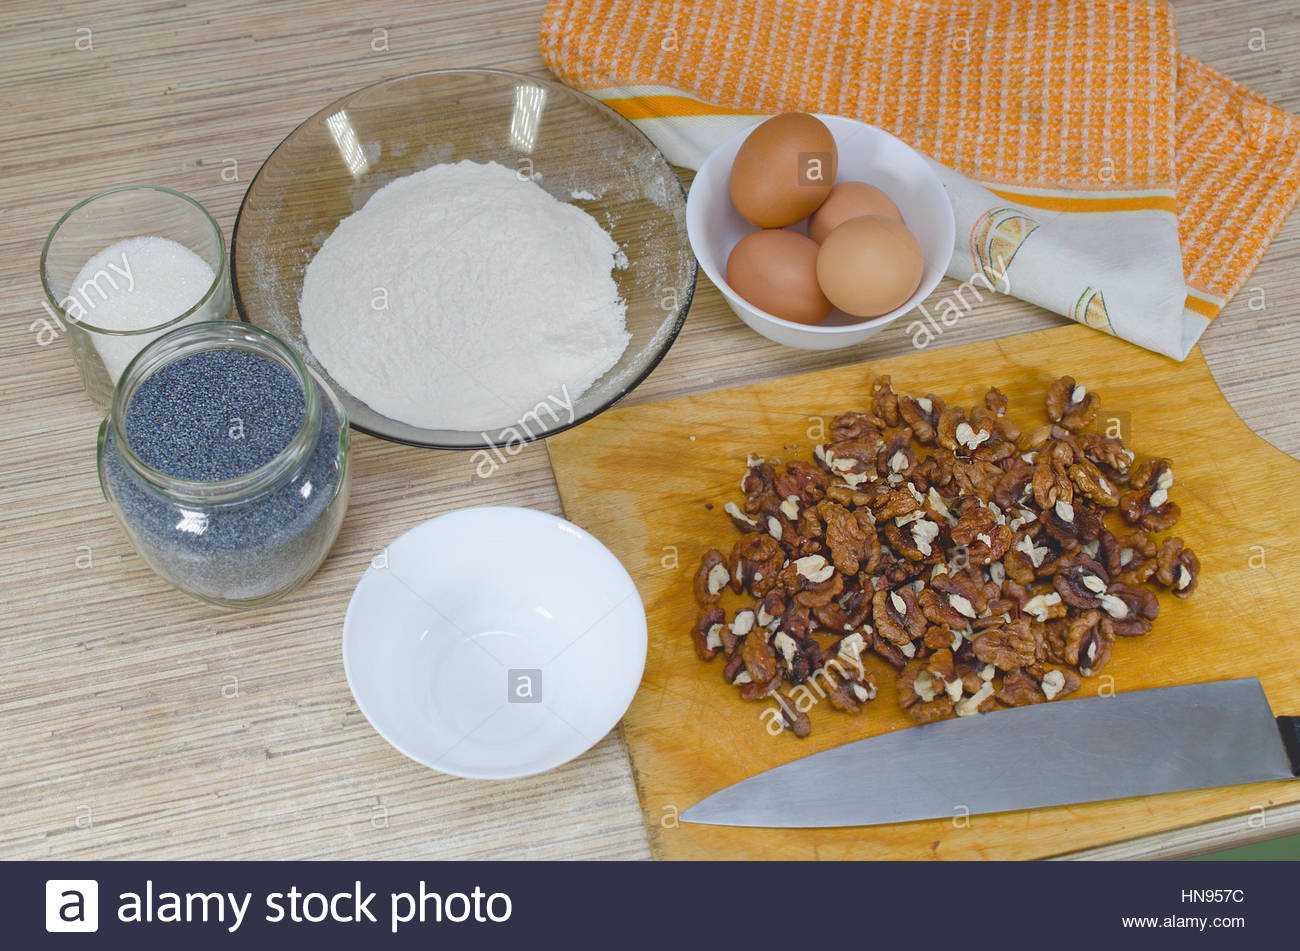 Ingredients for cooking homemade cake - Stock Image